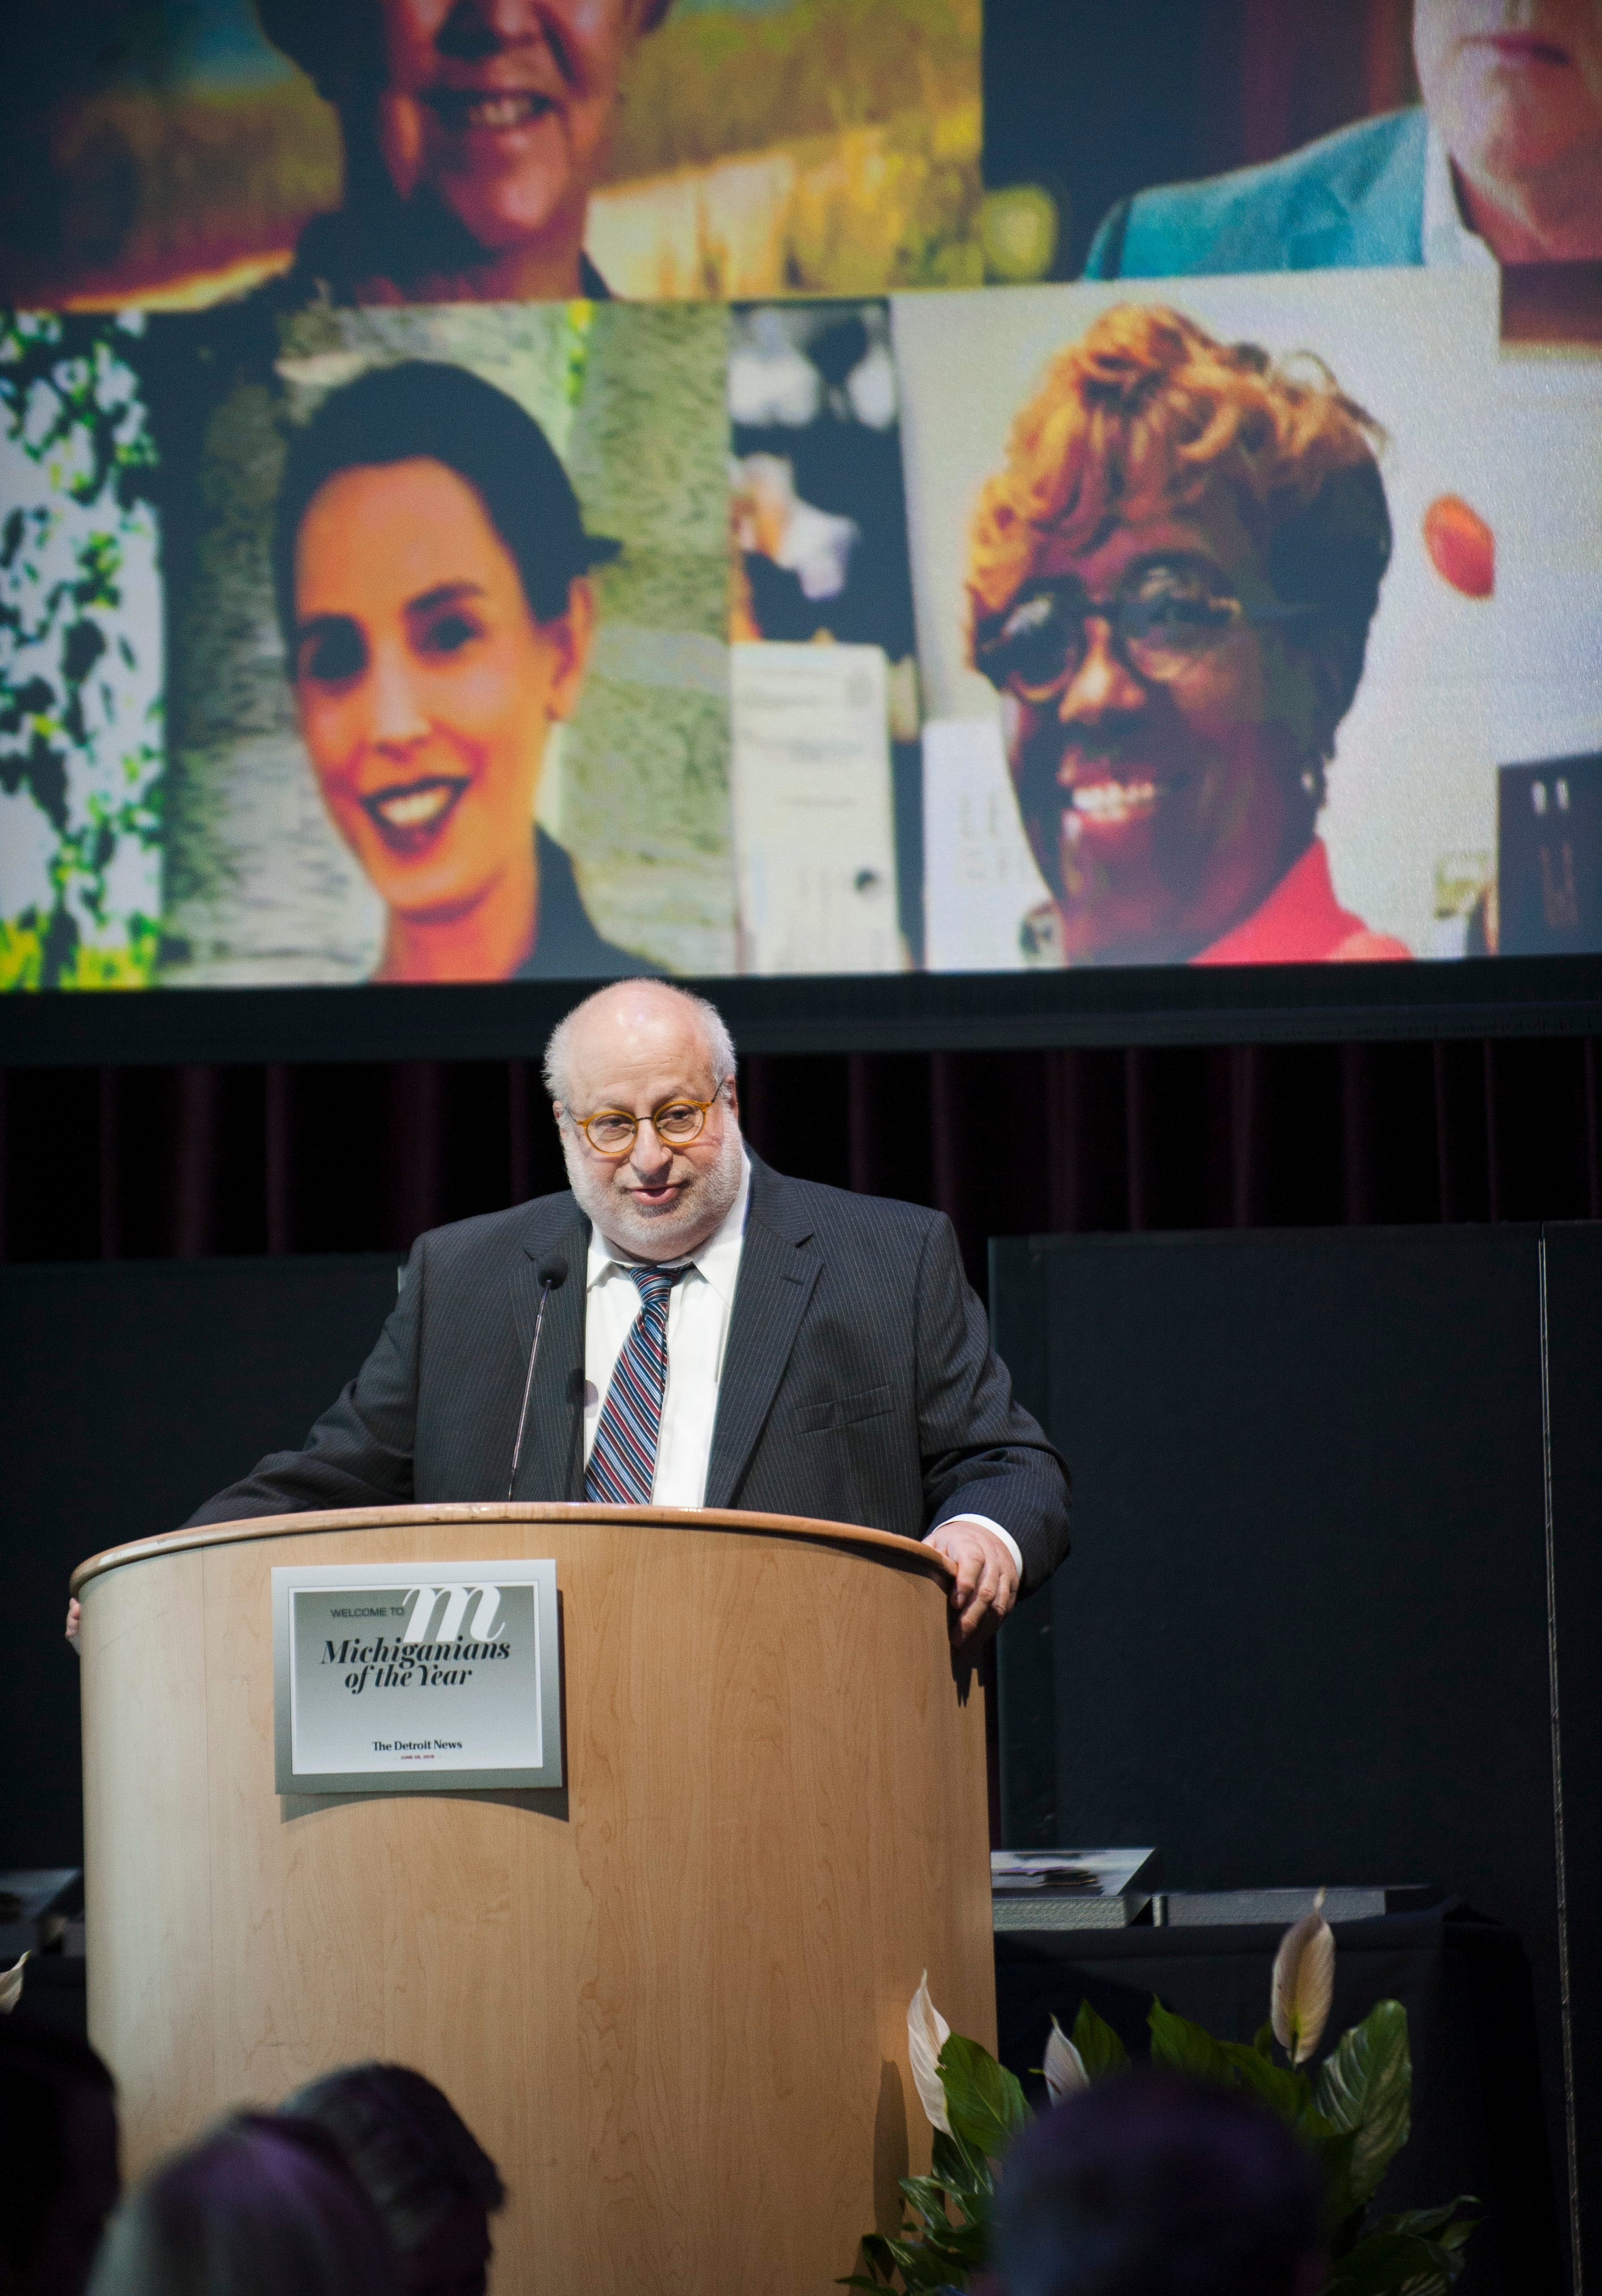 Detroit News editor and publisher Jonathan Wolman addresses the honorees and guests on June 28, 2018, at The Detroit News Michiganians of the Year dinner in Detroit.